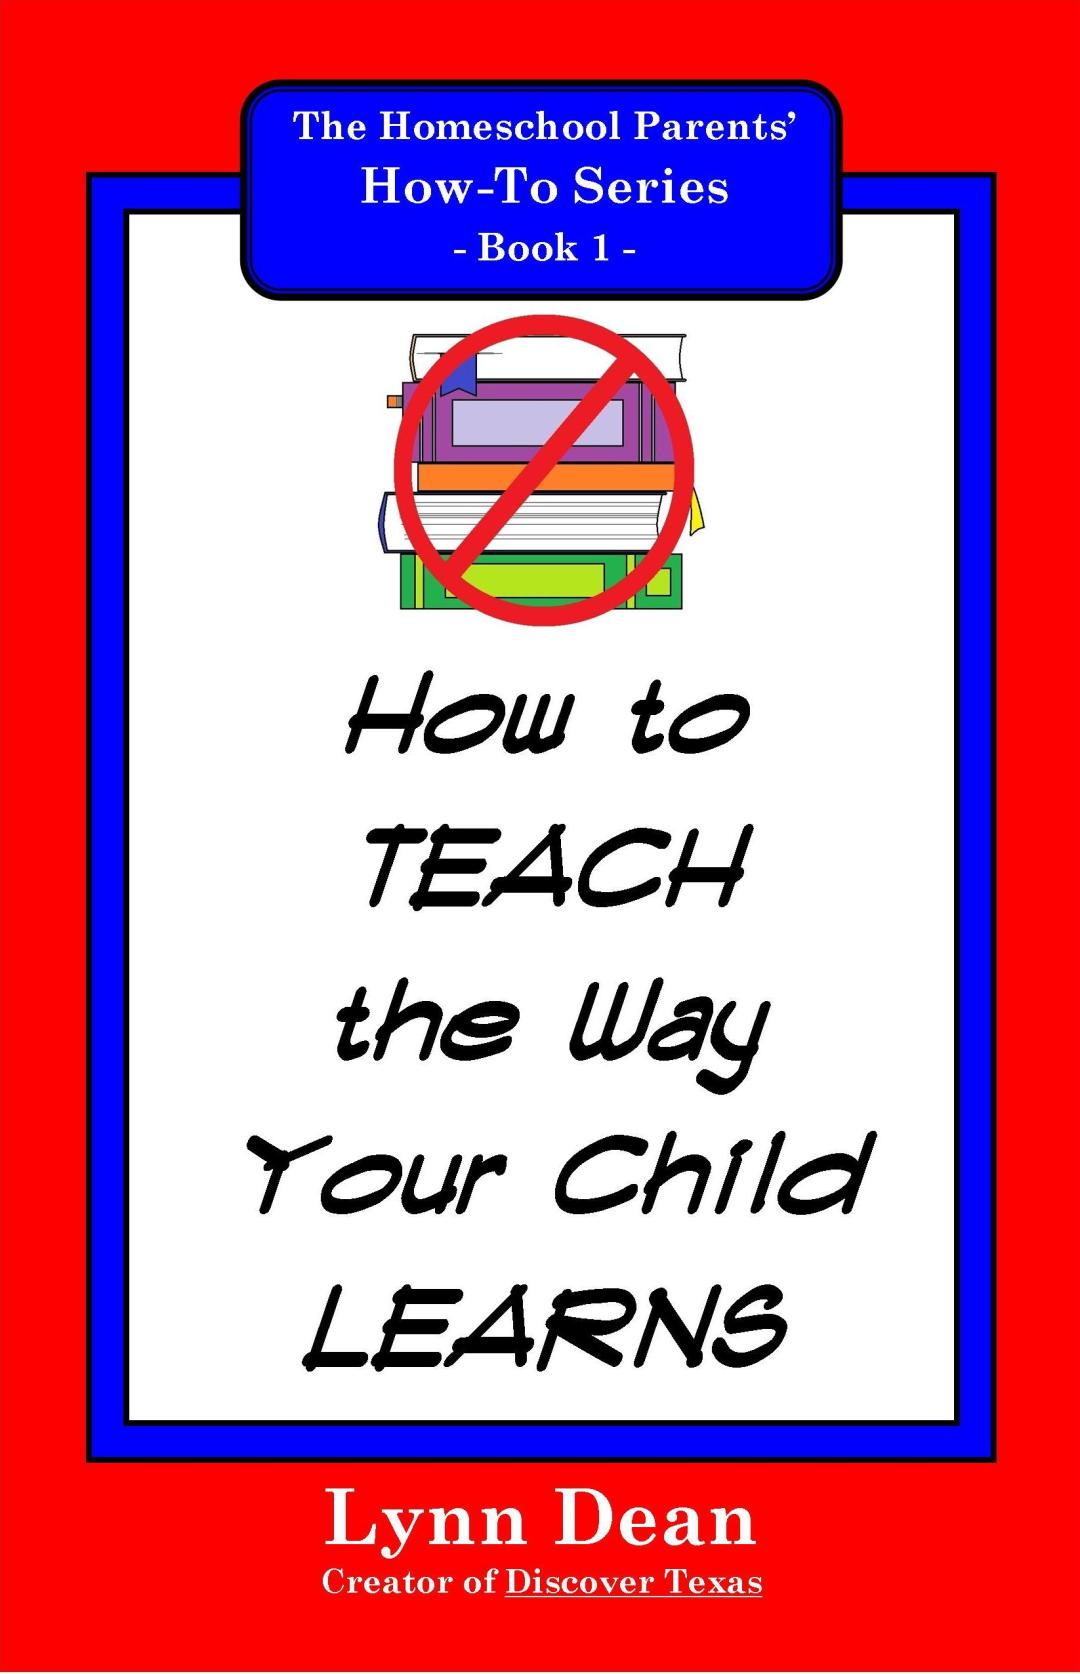 How to Teach the Way Your Child Learns